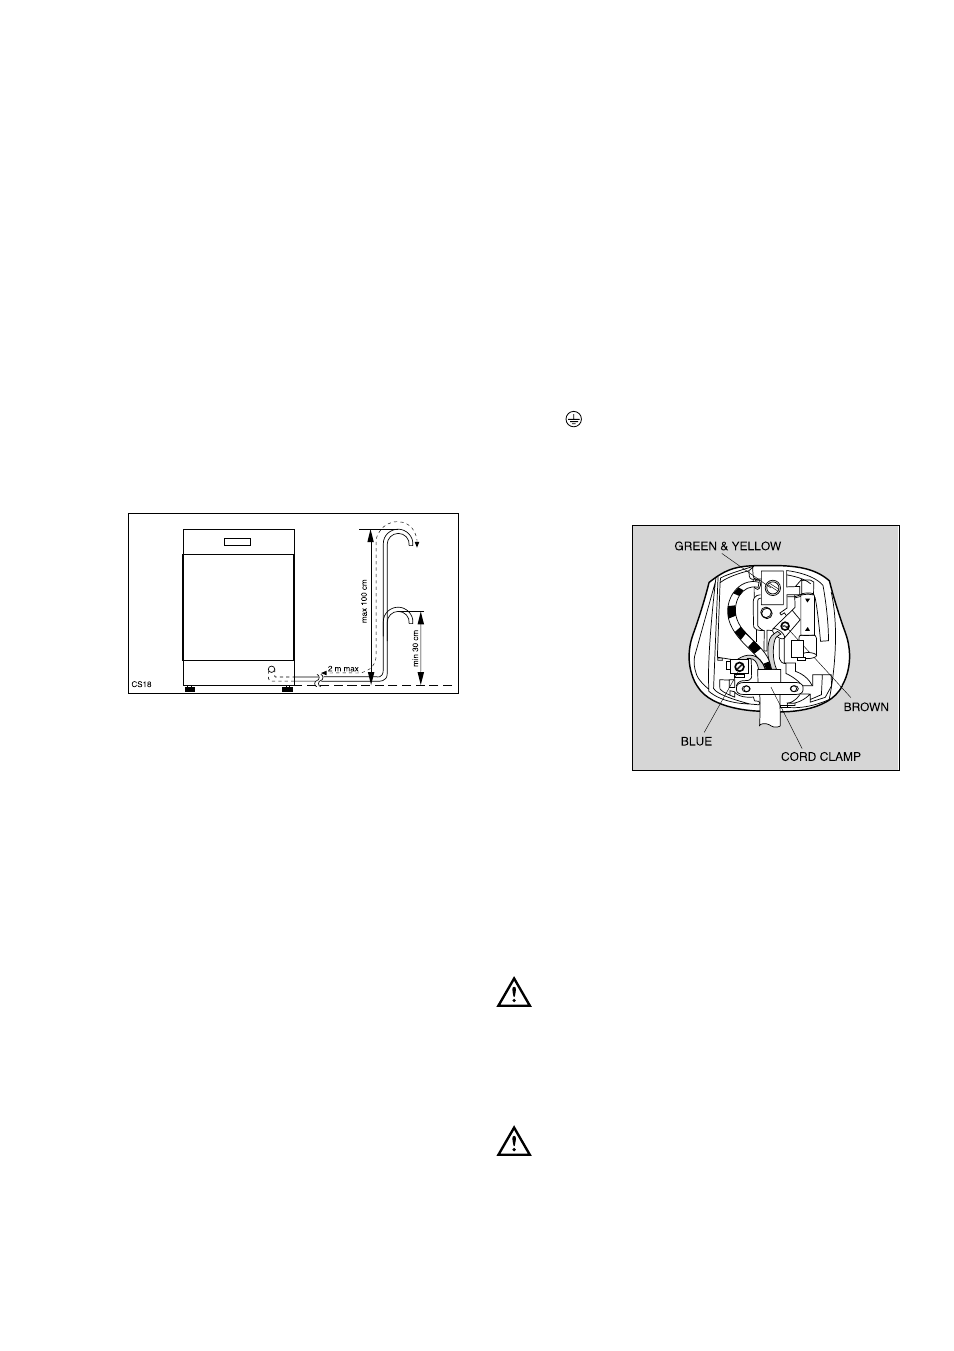 Water Outlet Hose Connection Electrical Tricity Bendix Wiring A Plug Earth Bdw 55 User Manual Page 18 20